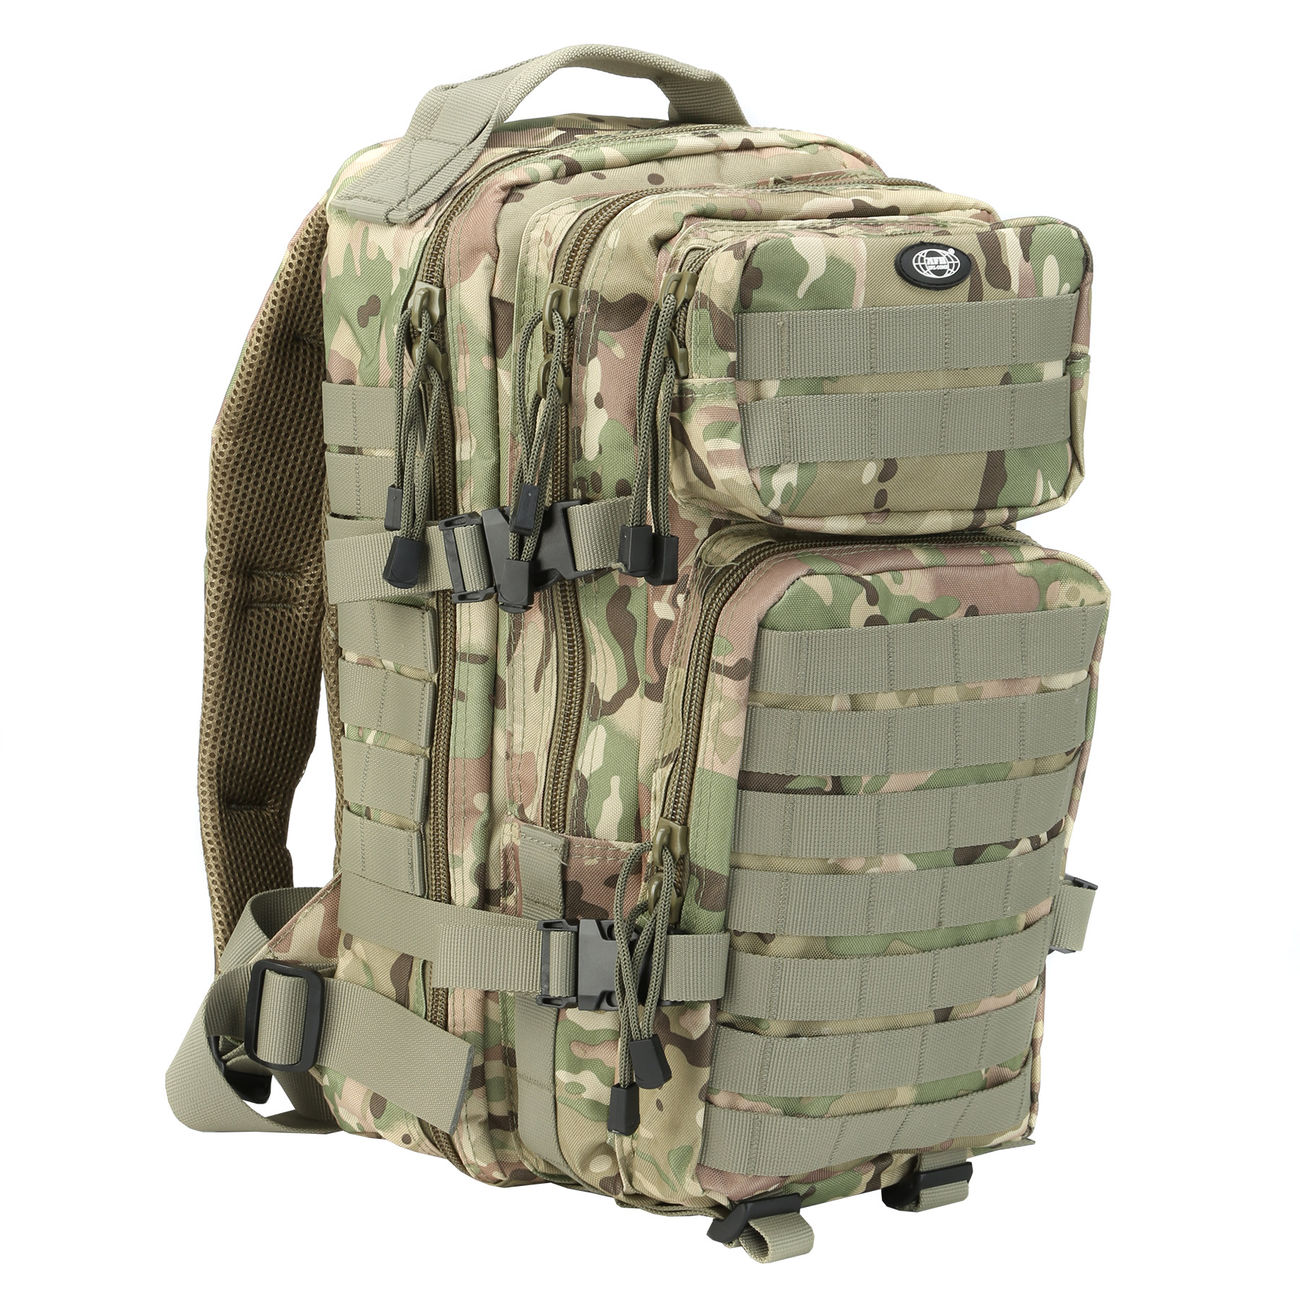 MFH Rucksack Assault I operation camo 0